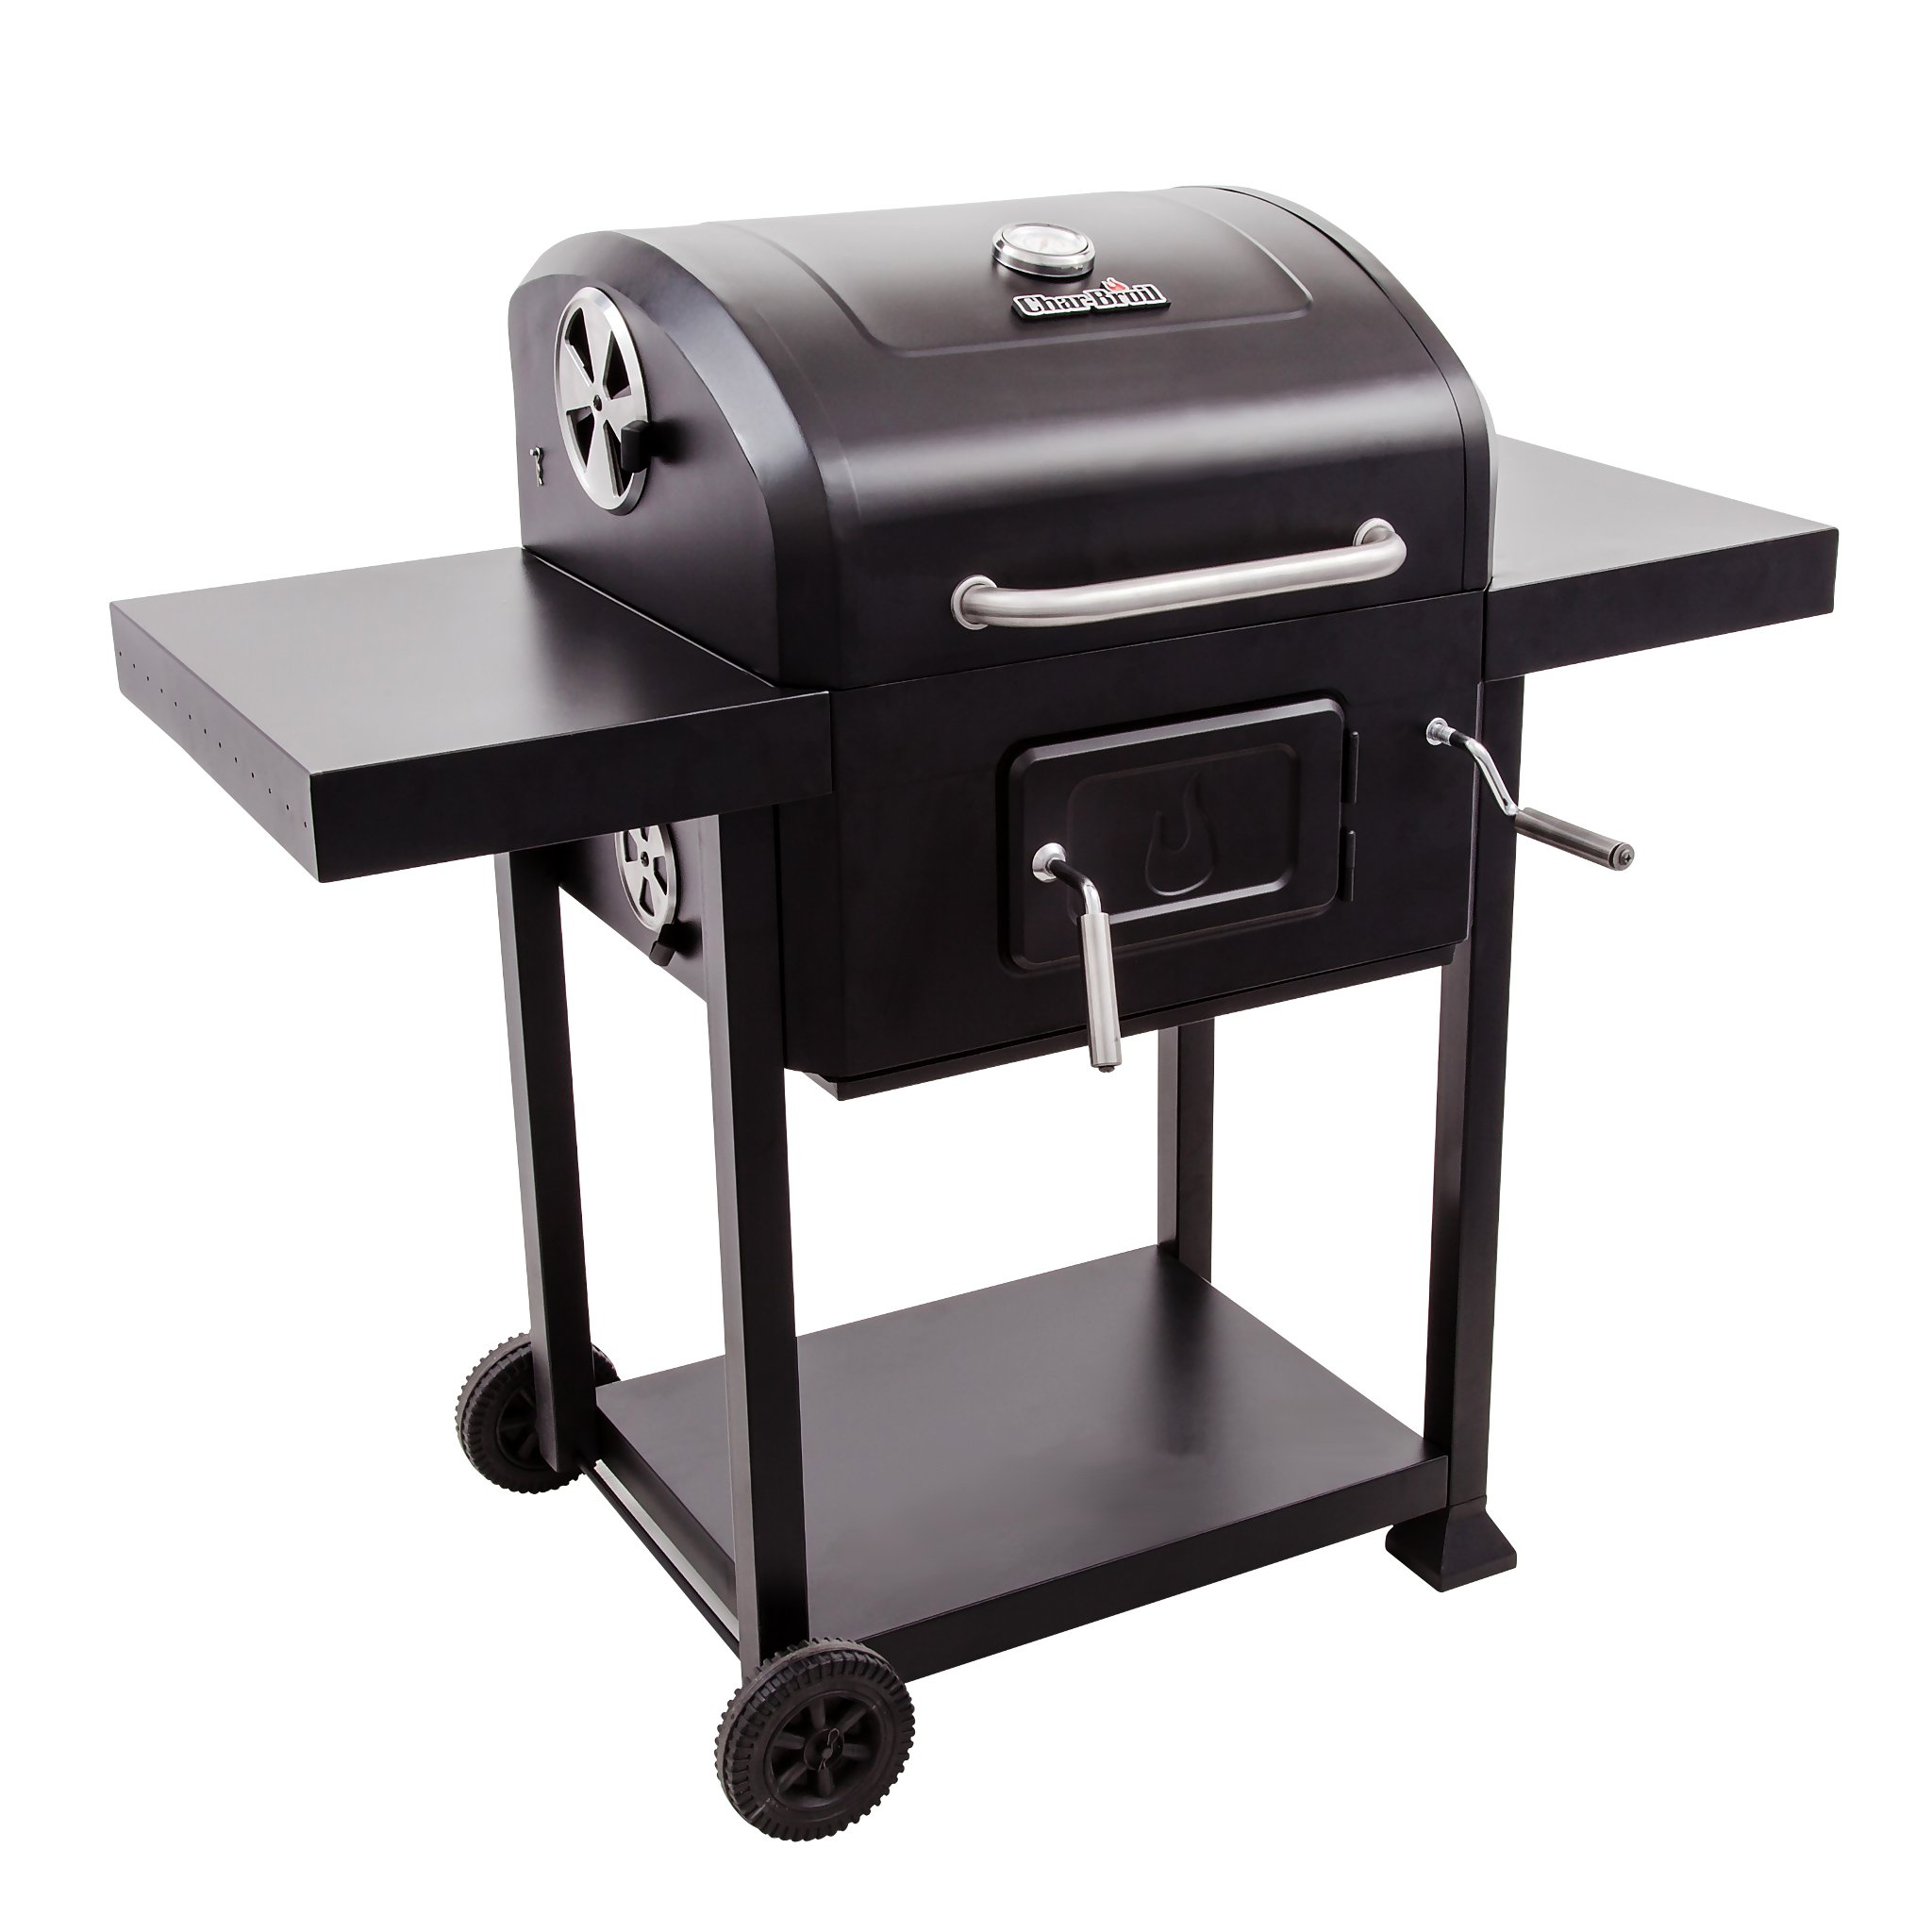 Char-Broil Charcoal Grill, 580 Square Inch